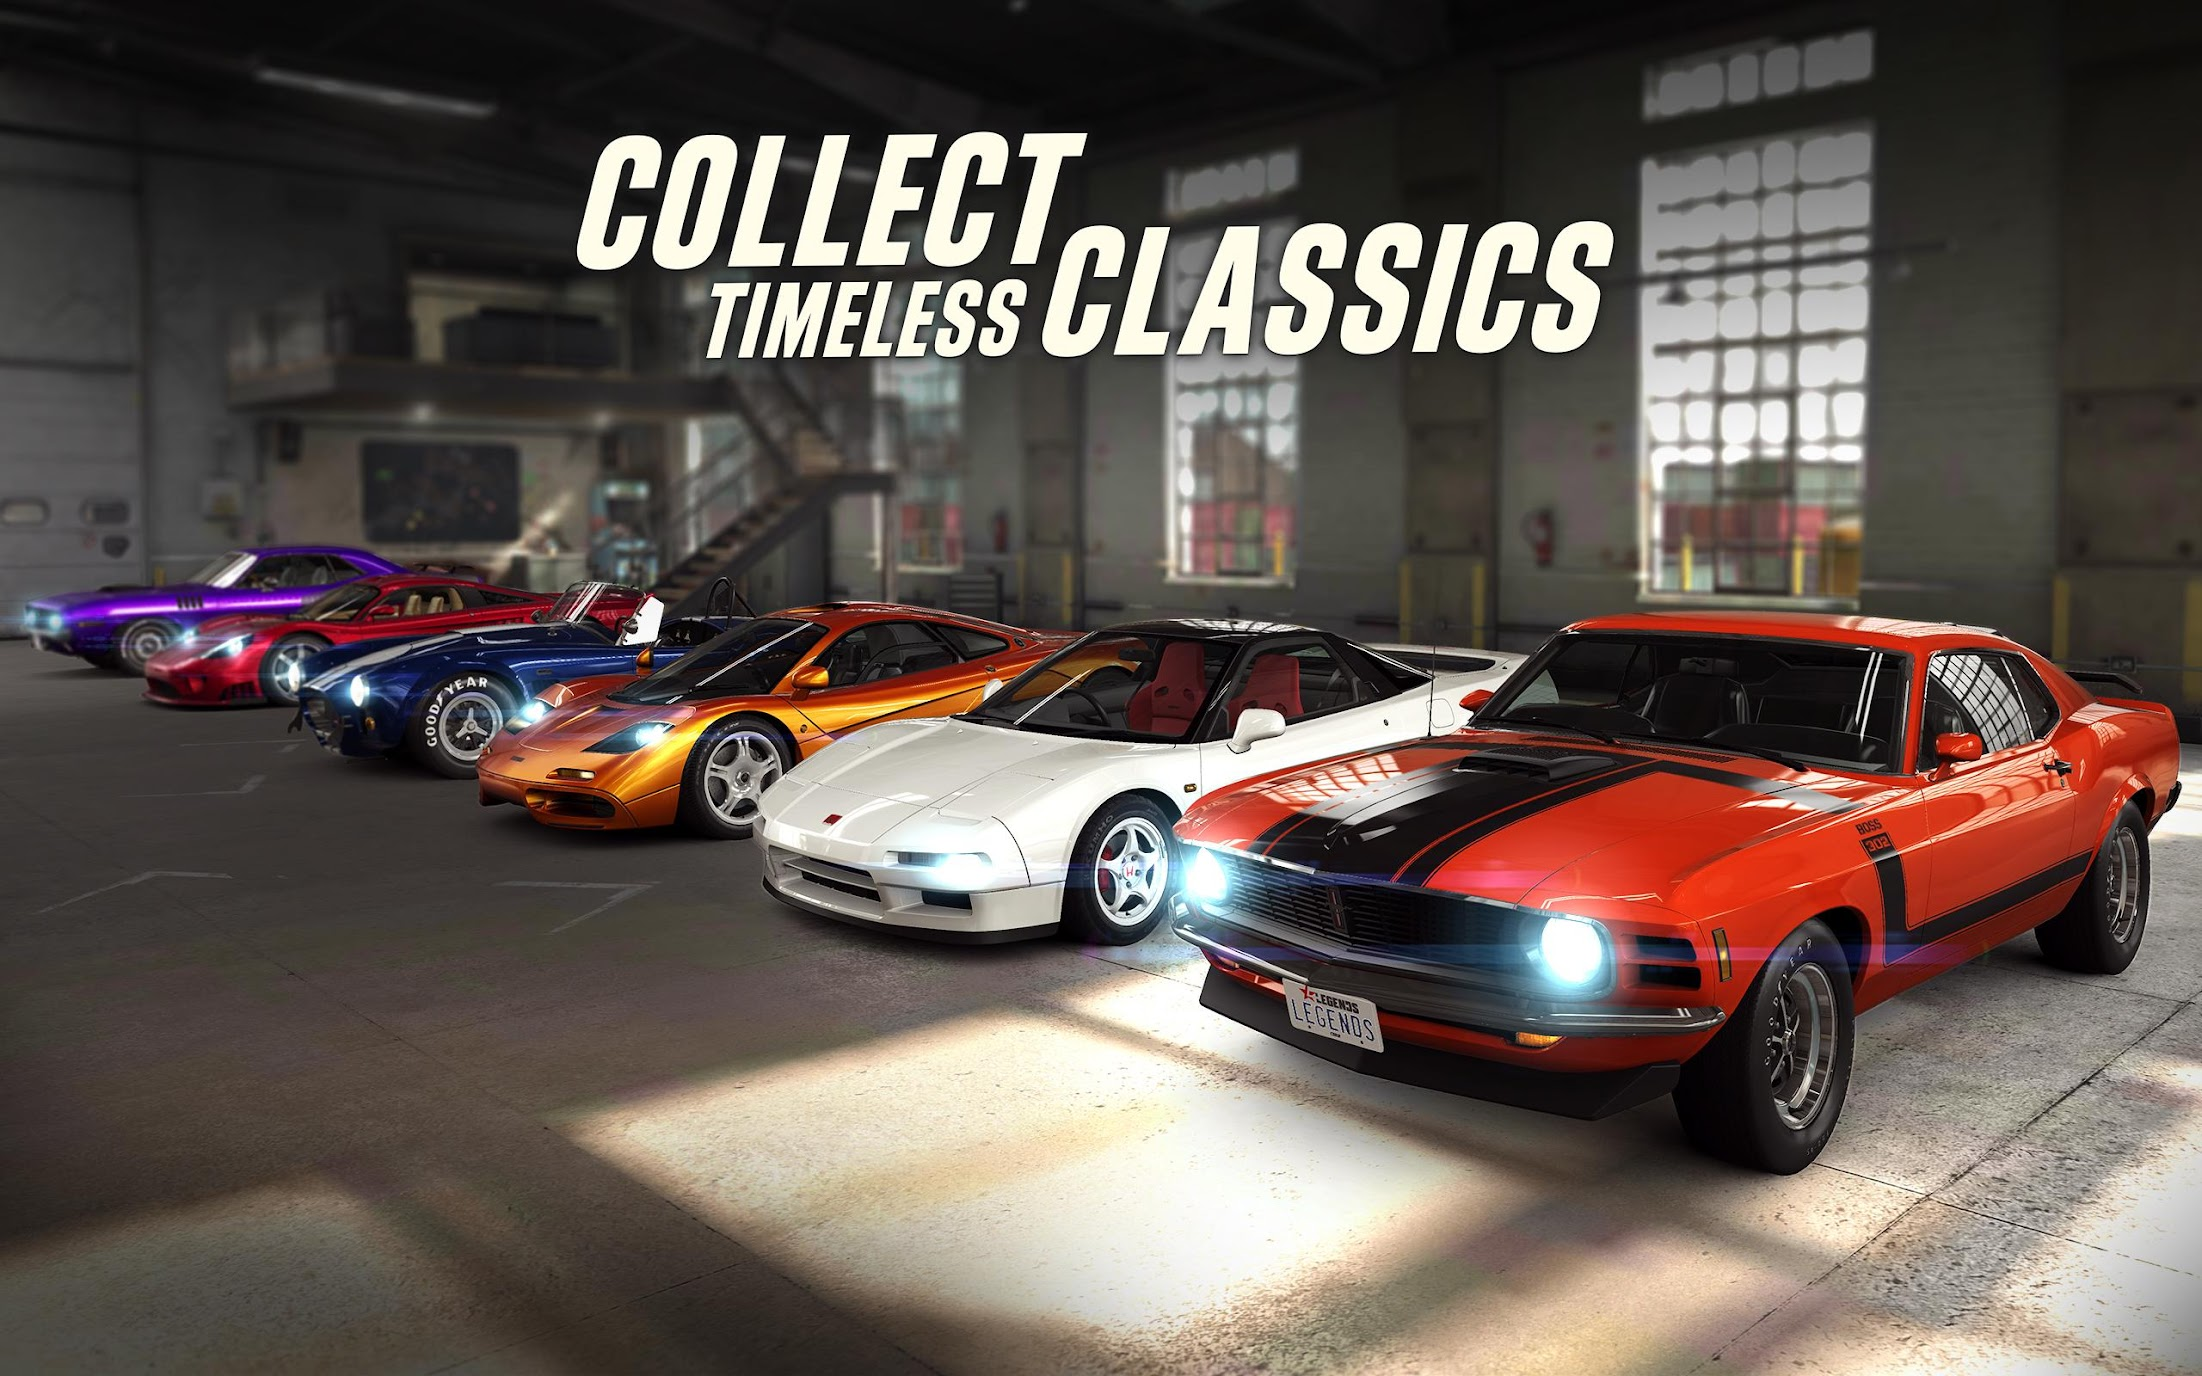 Csr Racing 2 Mod Apk (Unlimited Money/Gold/Keys) 2